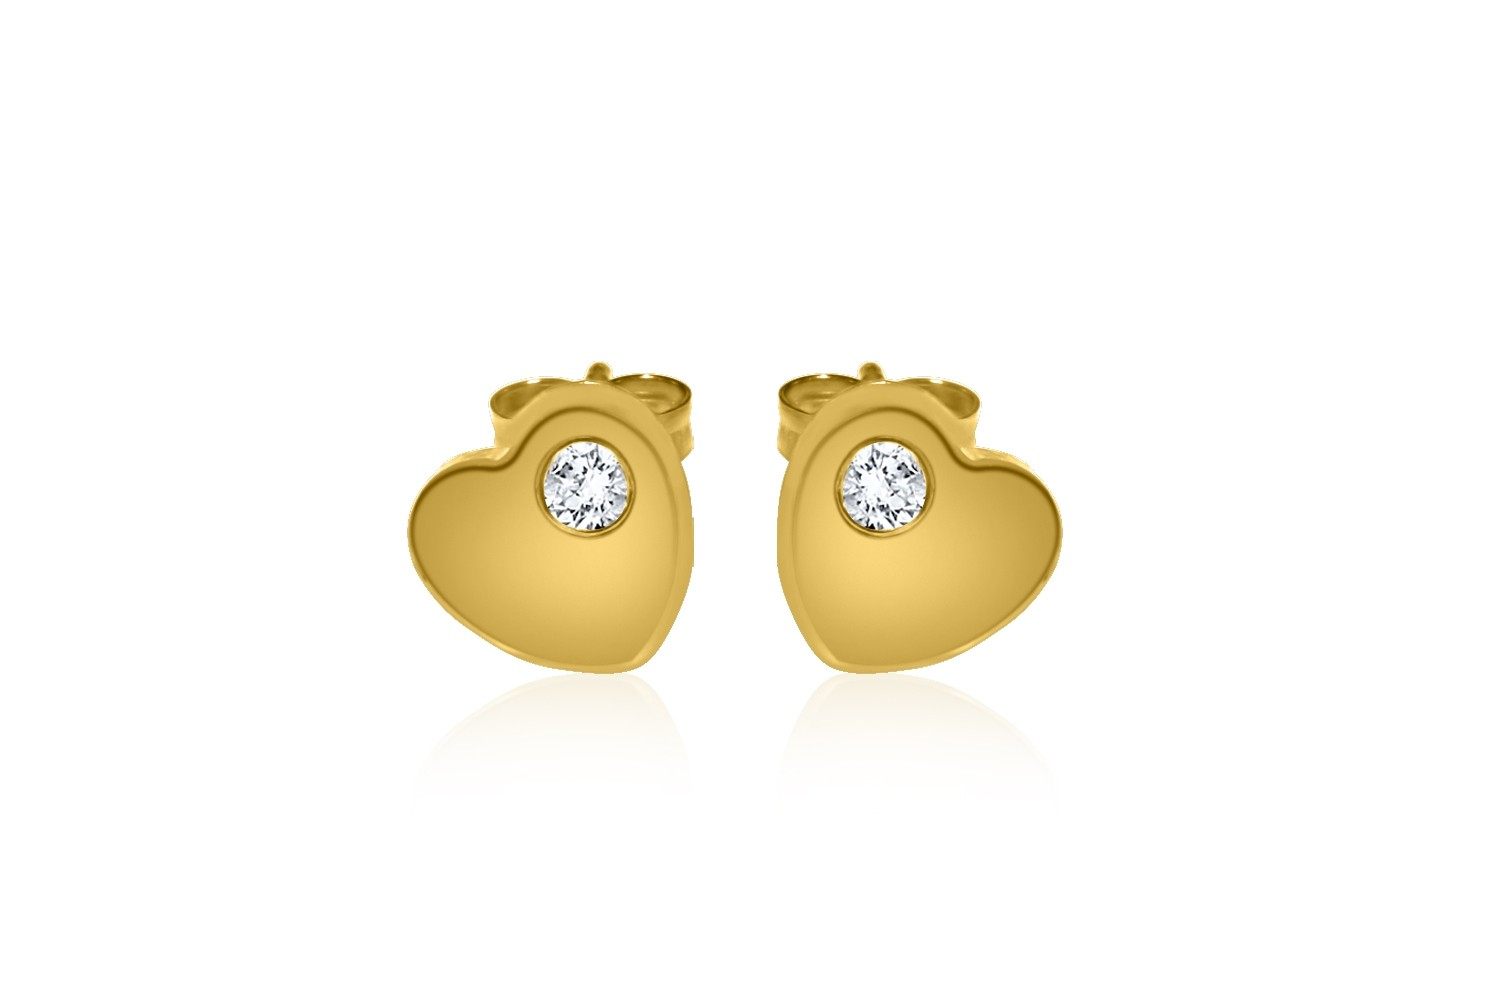 UK MADE 9ct Yellow Gold Polished Heart Stud Earrings